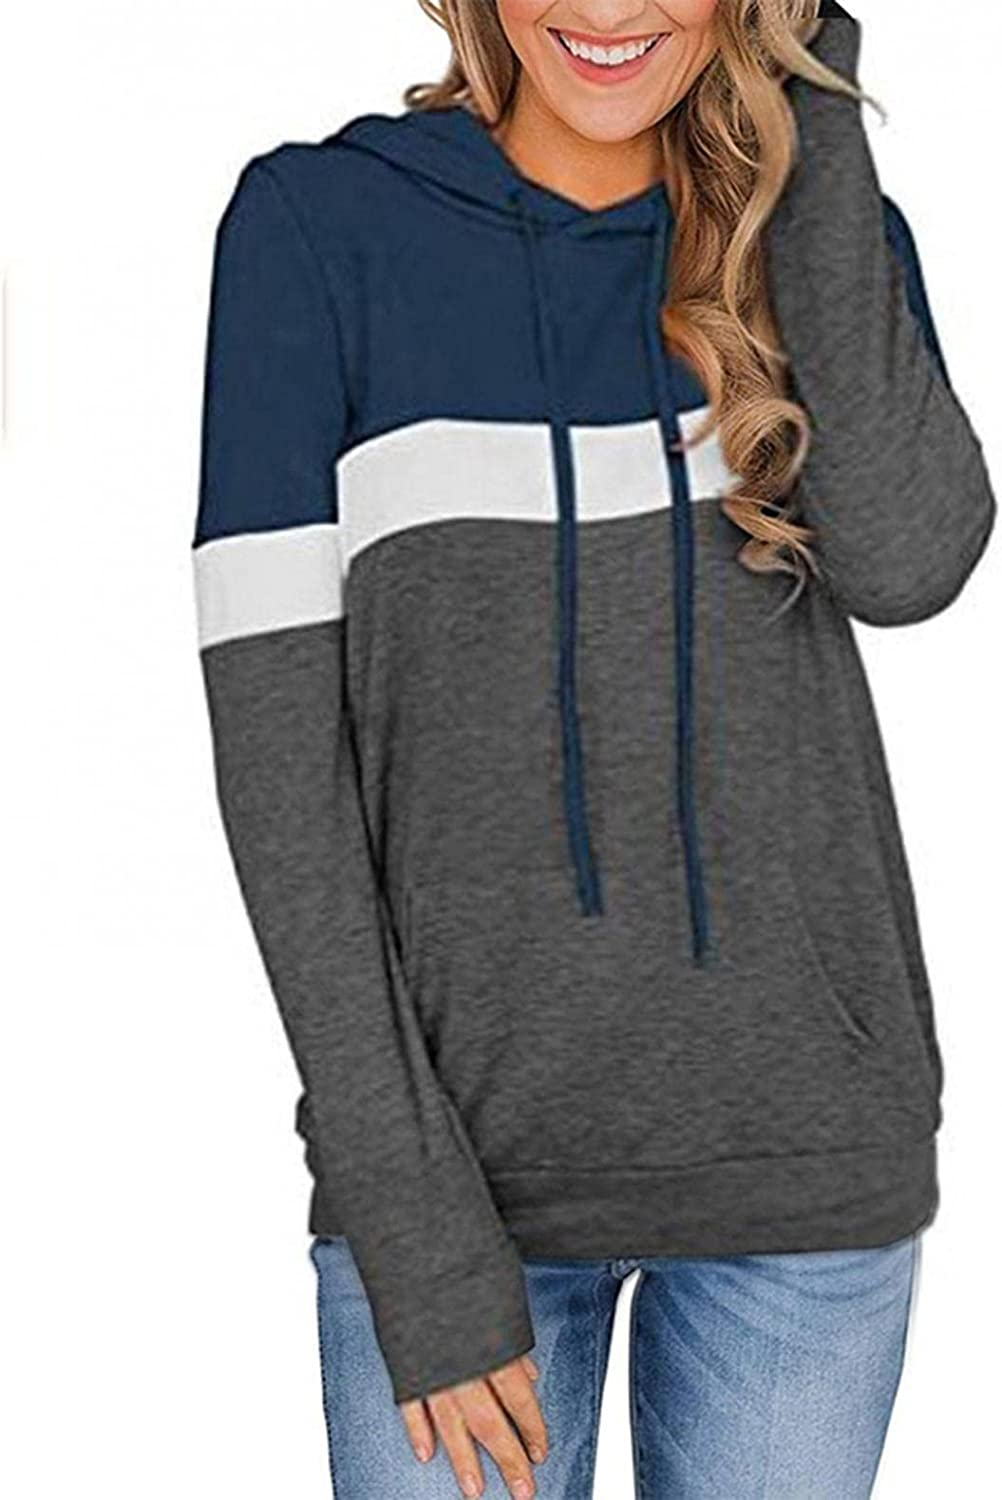 quality assurance Women's Casual Color Block Hoodies Tops High material Comfy T Sleeve Shir Long